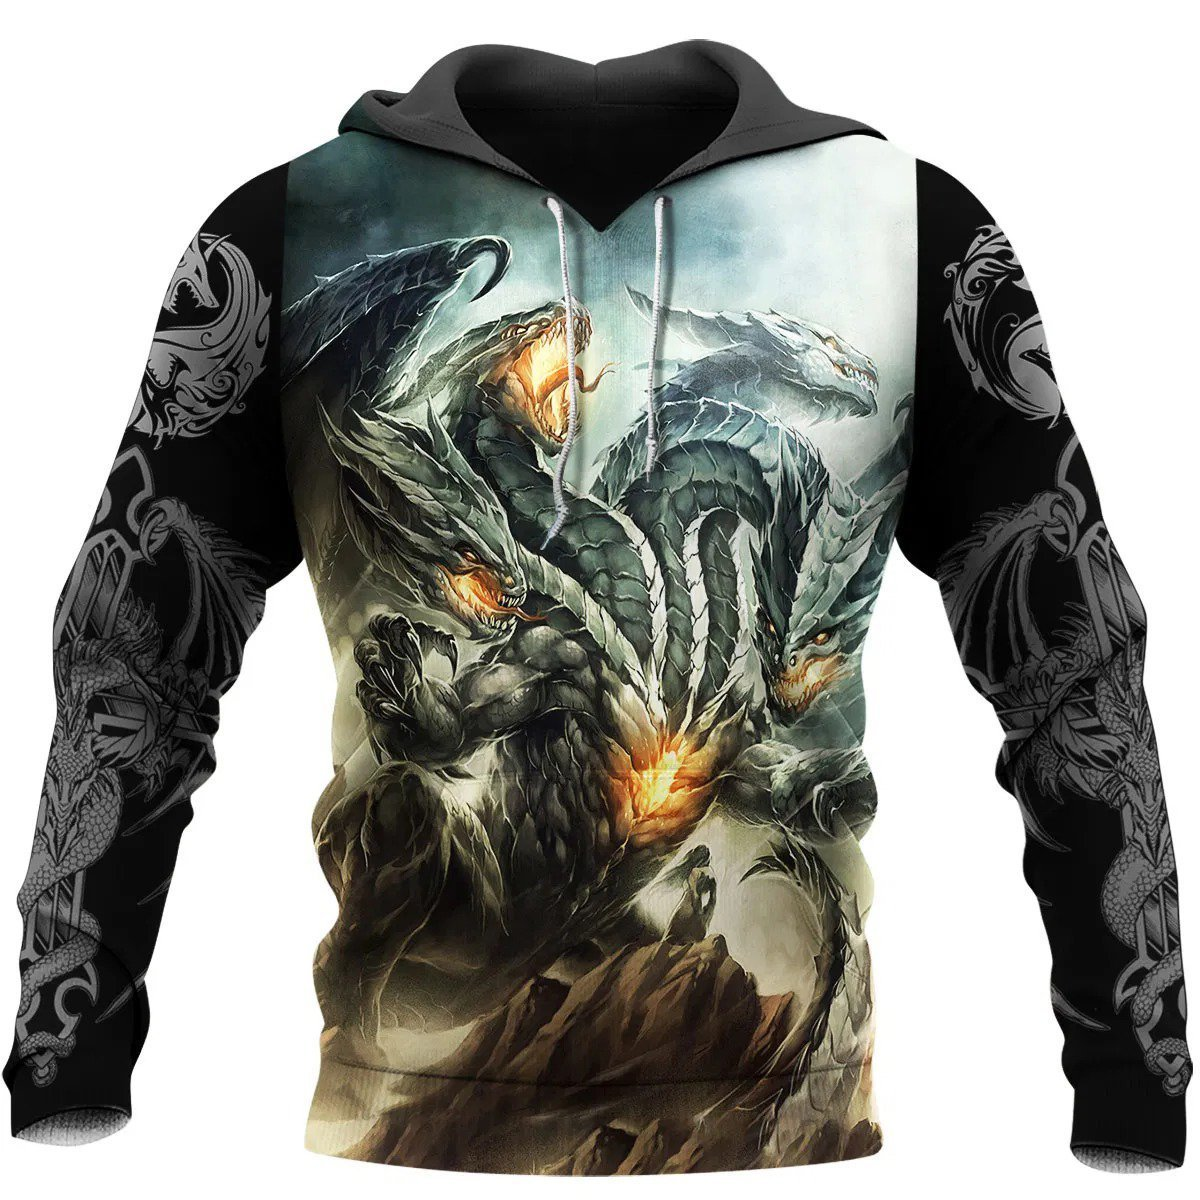 Dragon 3D All Over Printed Hoodie AM220608